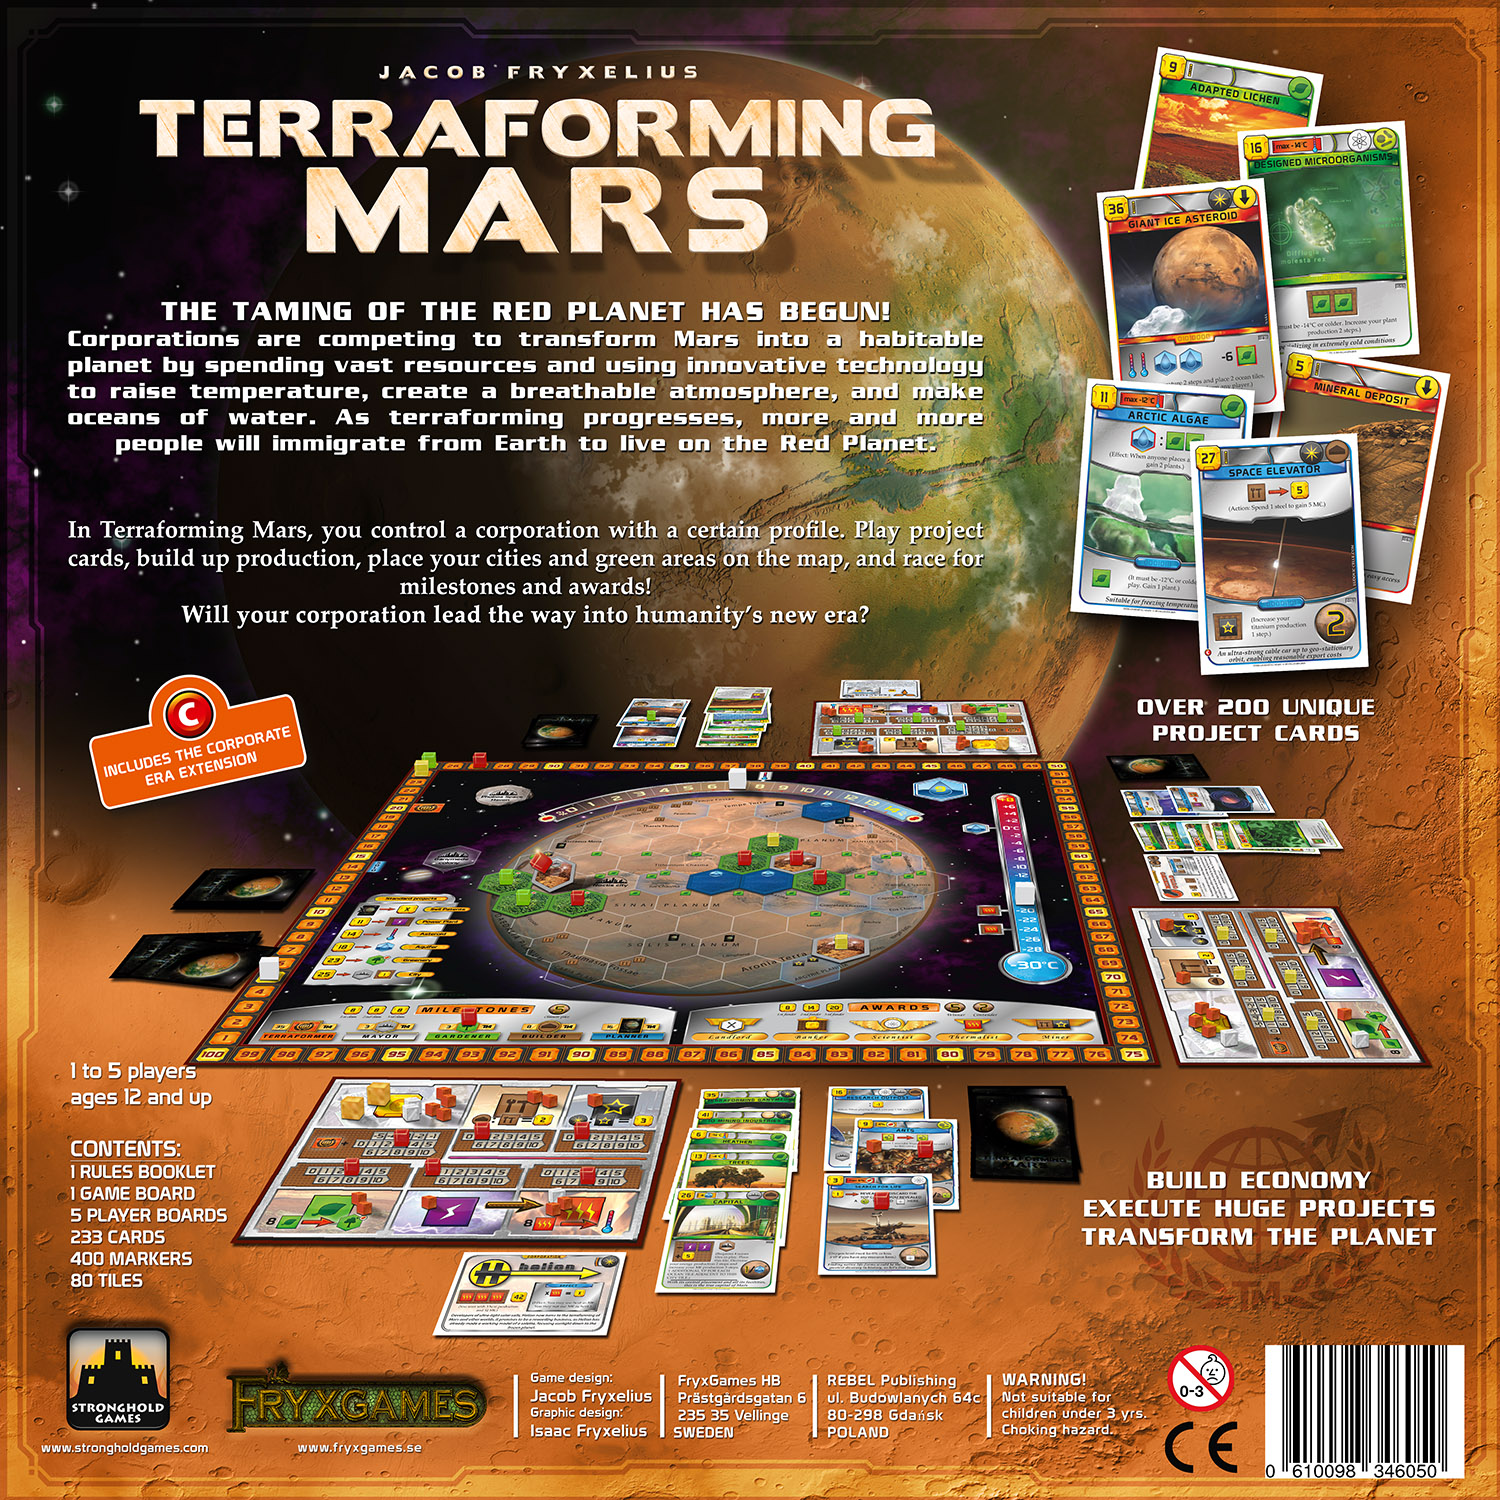 The Boardgaming Way Every Game is Awesome 36: Terraforming